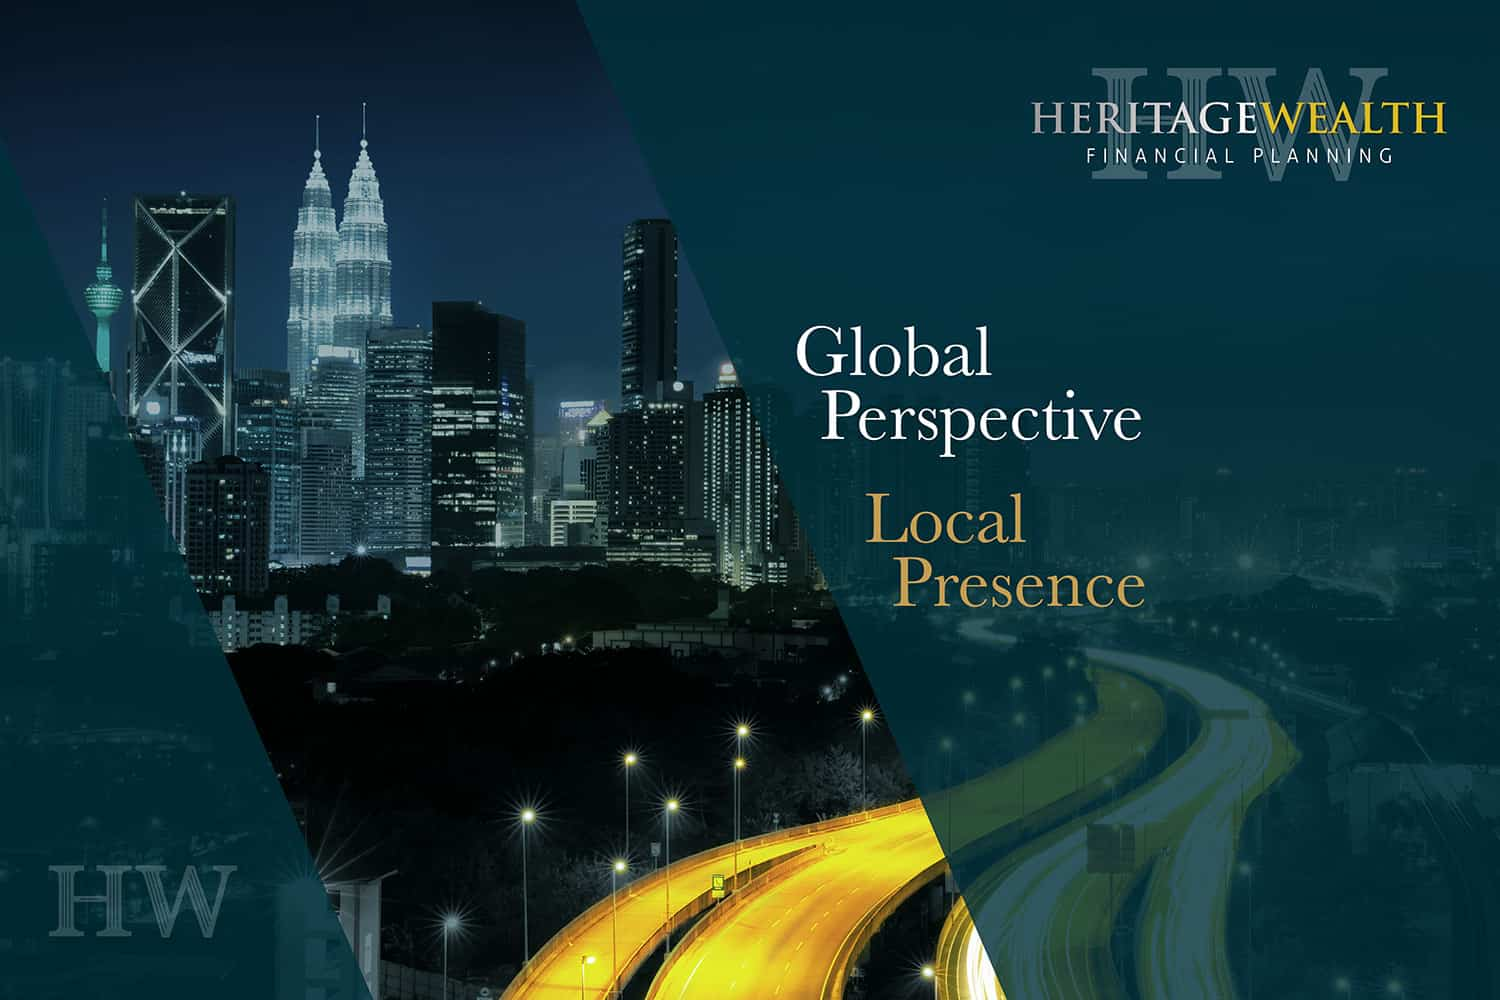 Global Perspective - Local Presence